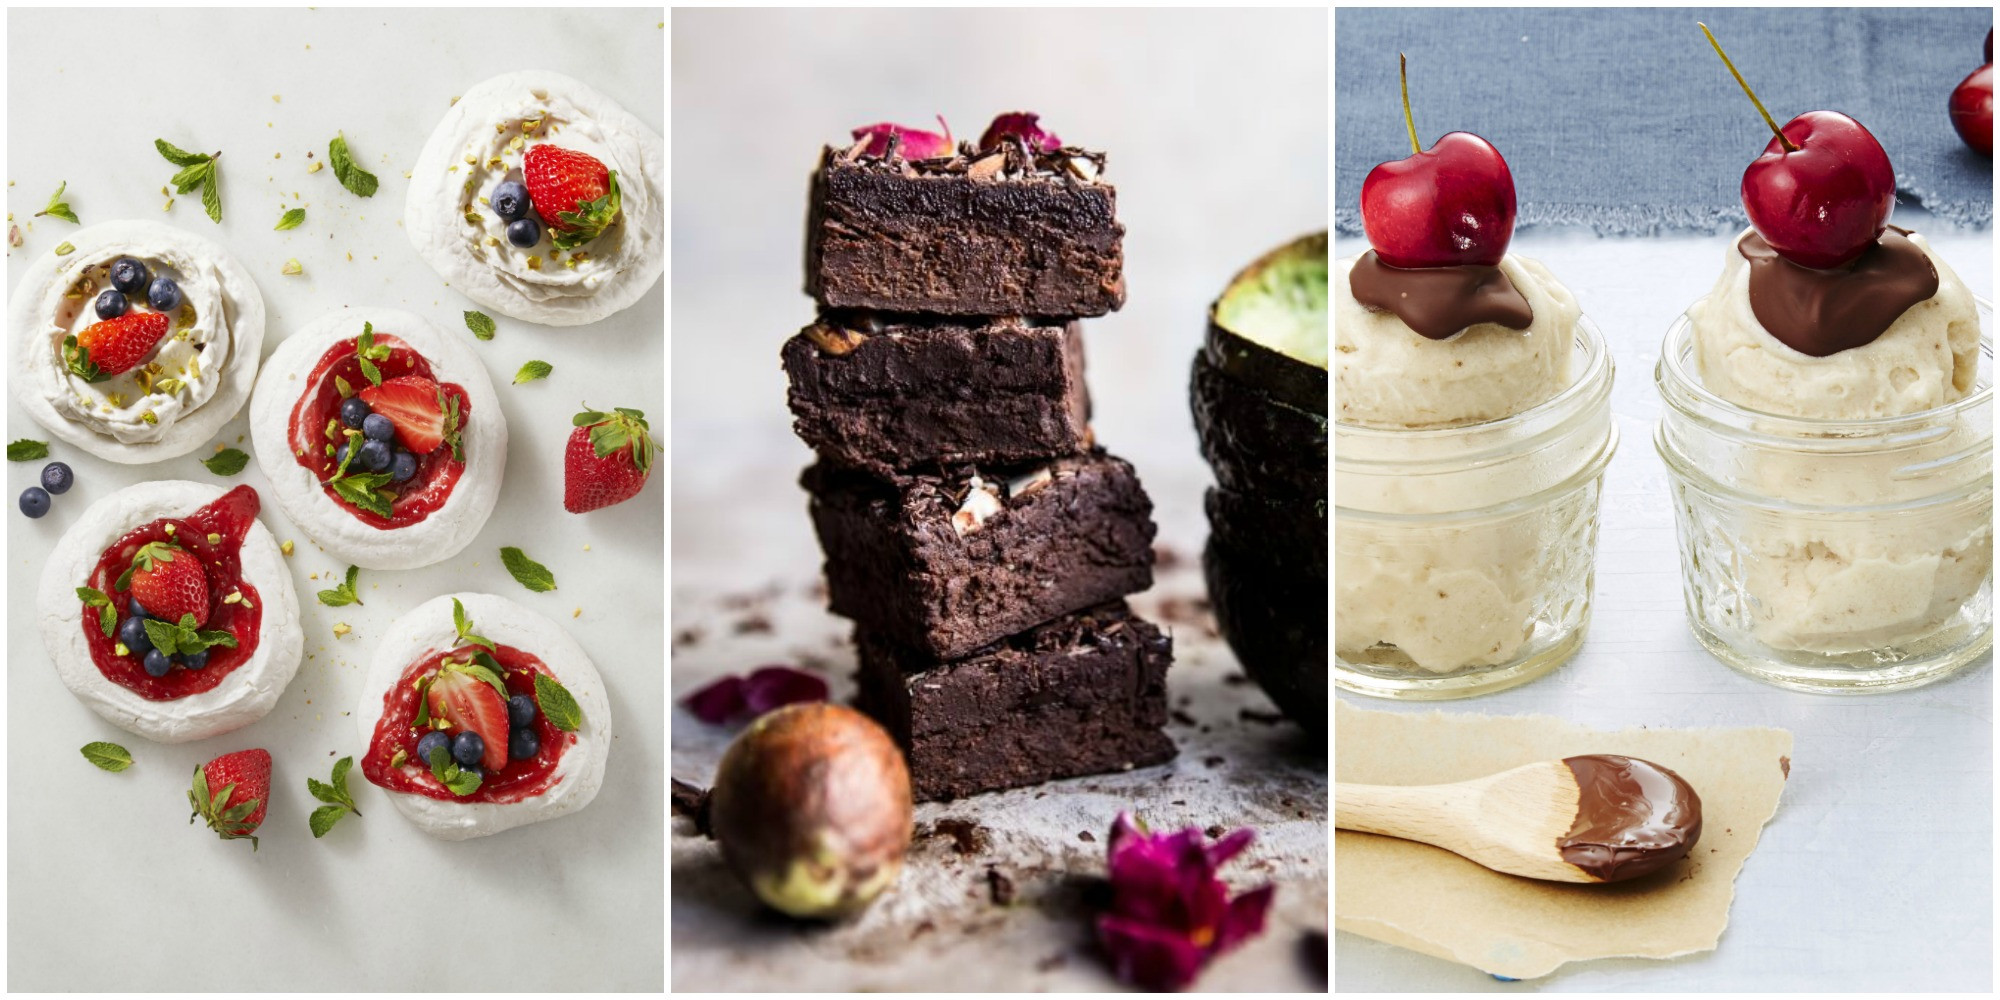 Easy Healthy Dessert Recipes  15 Best Healthy Dessert Recipes Easy Ideas for Low